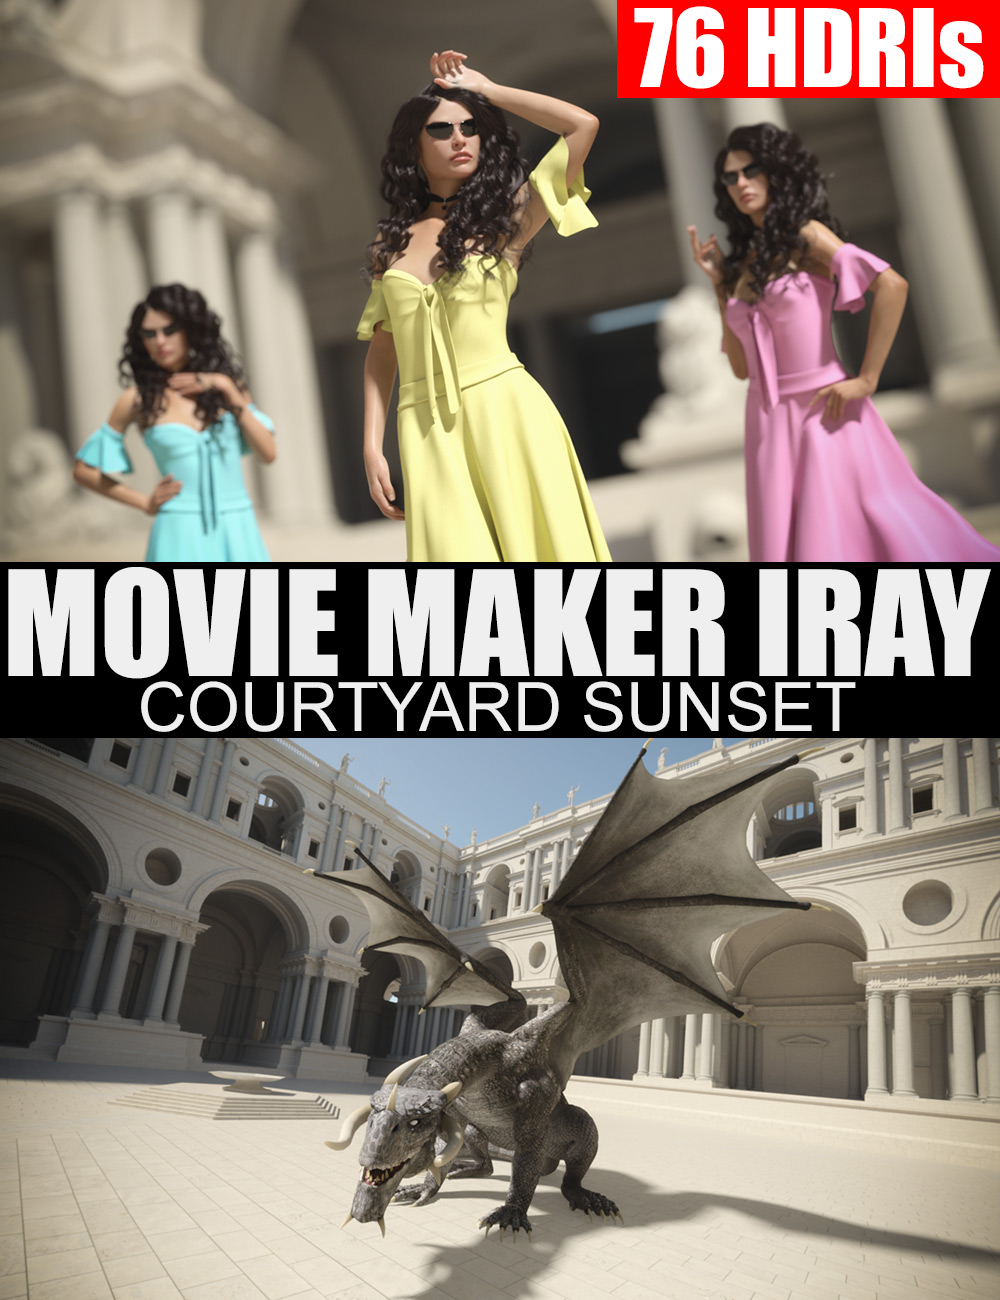 76 HDRIs - Movie Maker Iray - Courtyard Sunset by: Dreamlight, 3D Models by Daz 3D